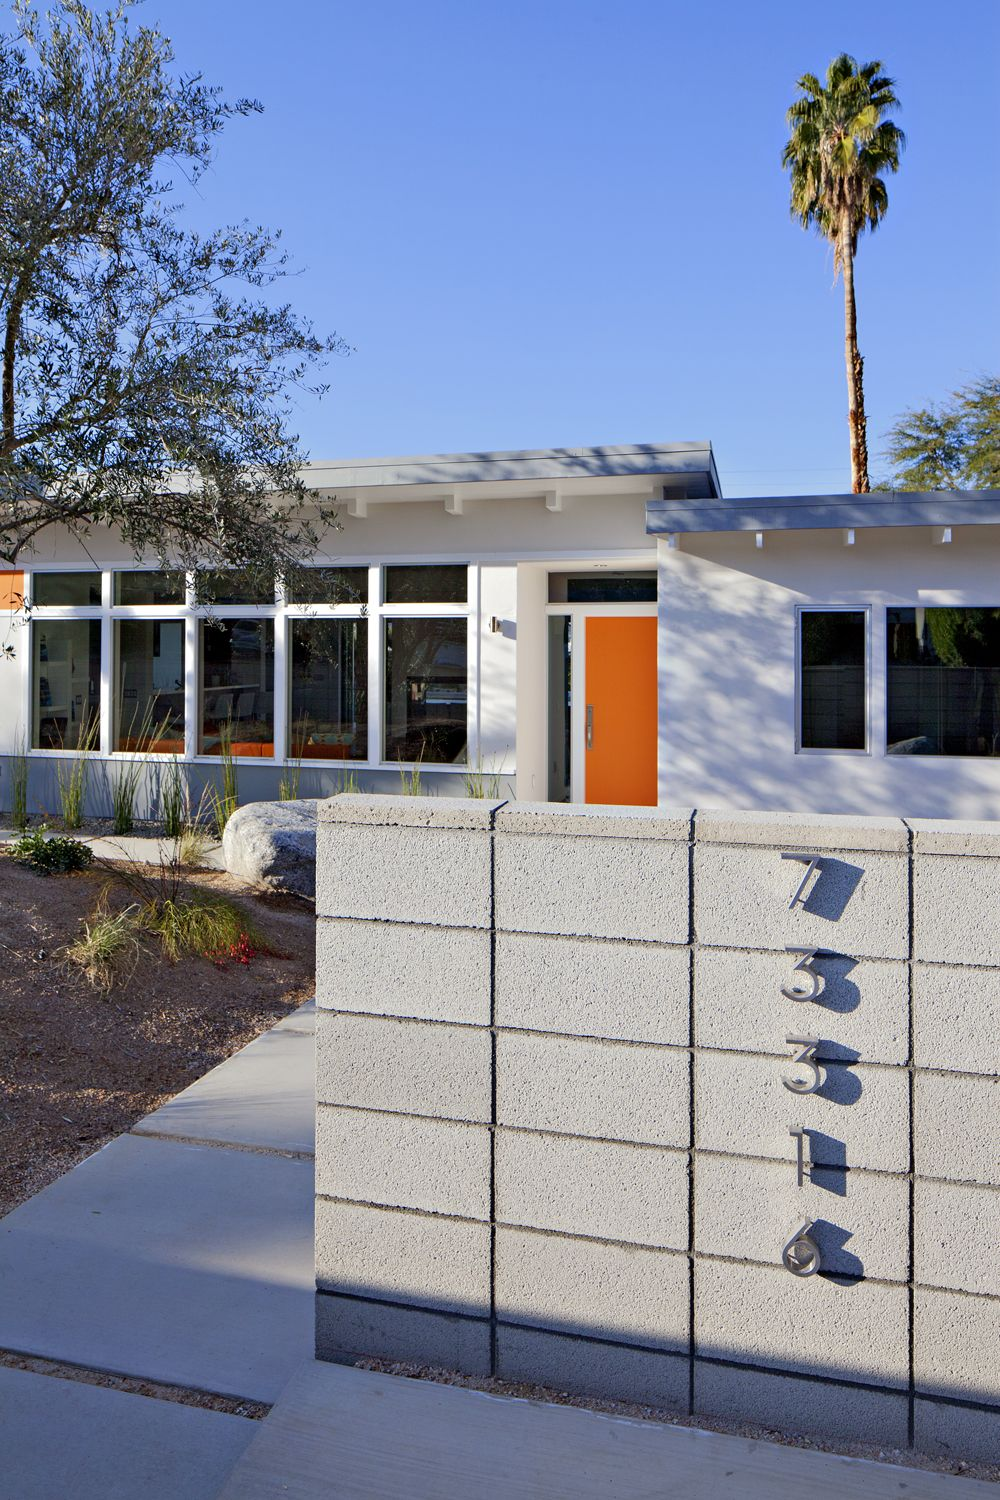 Mid century modern exterior house colors - Midcentury Modern Homes South Palm Desert Mid Century Modern Home Expanded Transformed Into